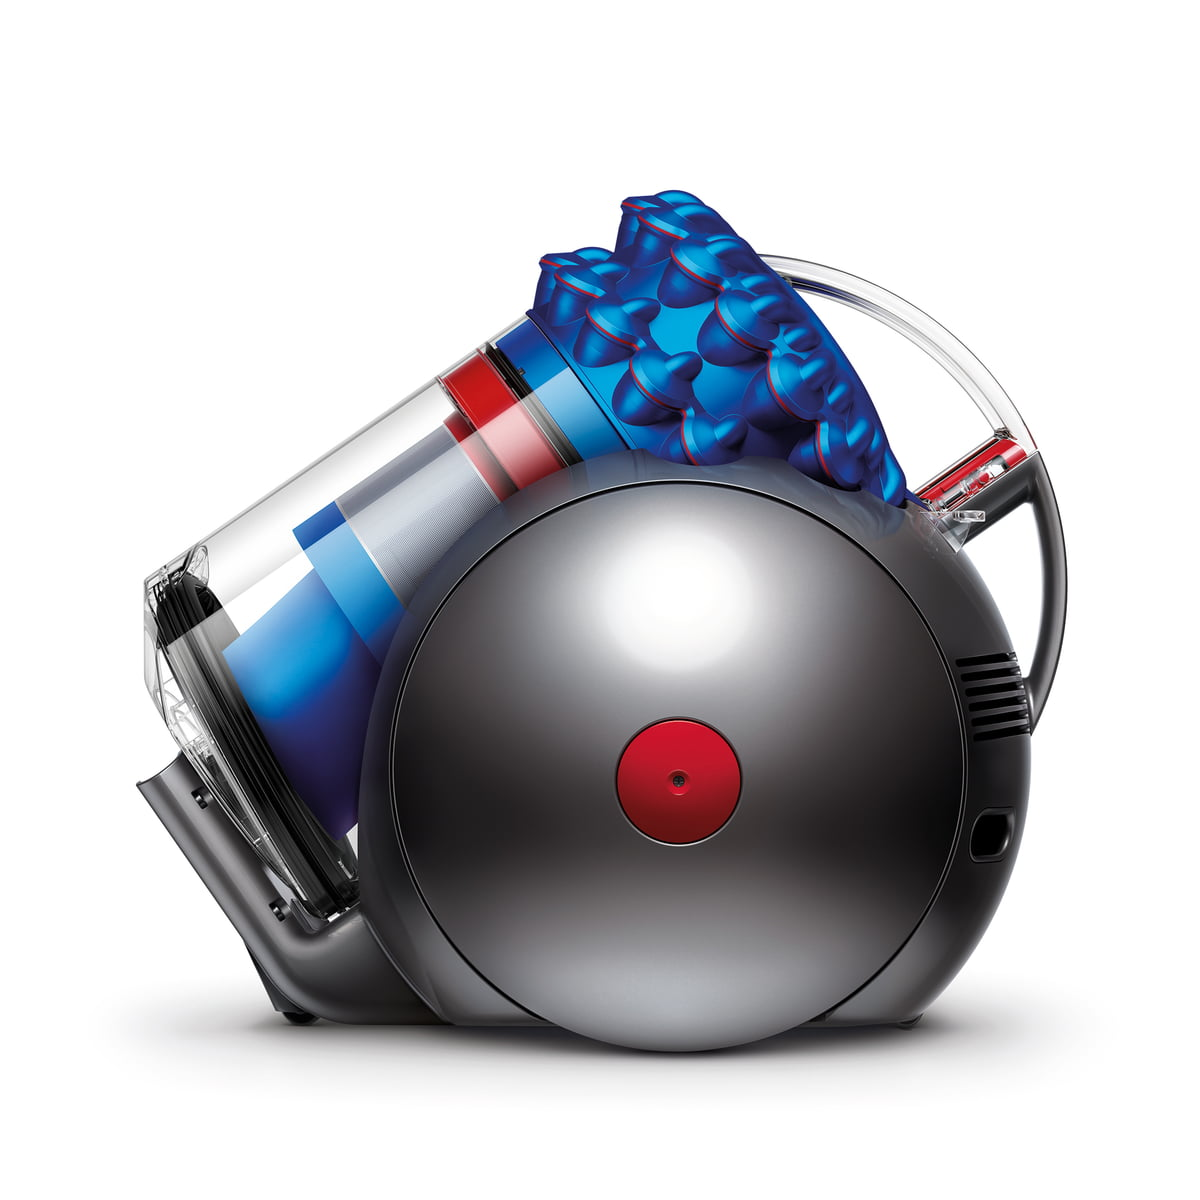 buy the bagless vacuum cleaner by dyson online. Black Bedroom Furniture Sets. Home Design Ideas